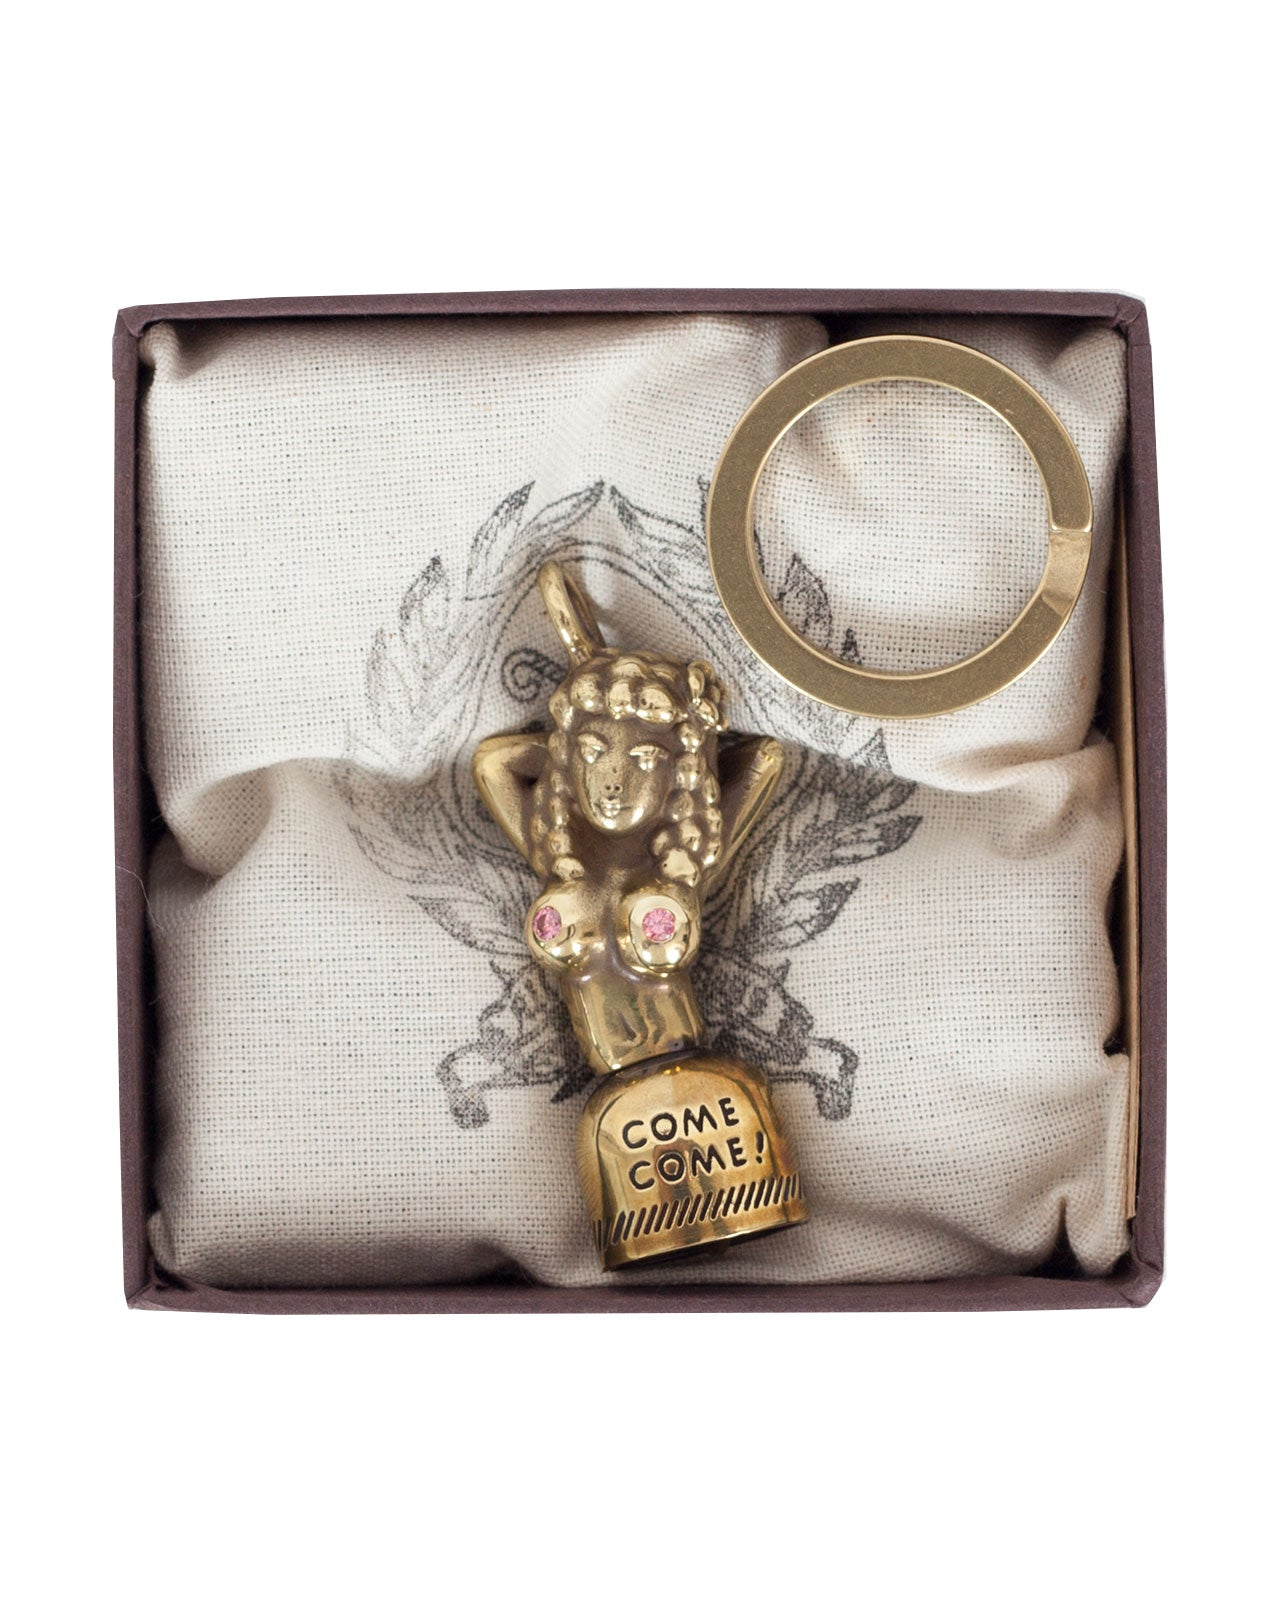 Peanuts & Co Come Come Bell Key Ring